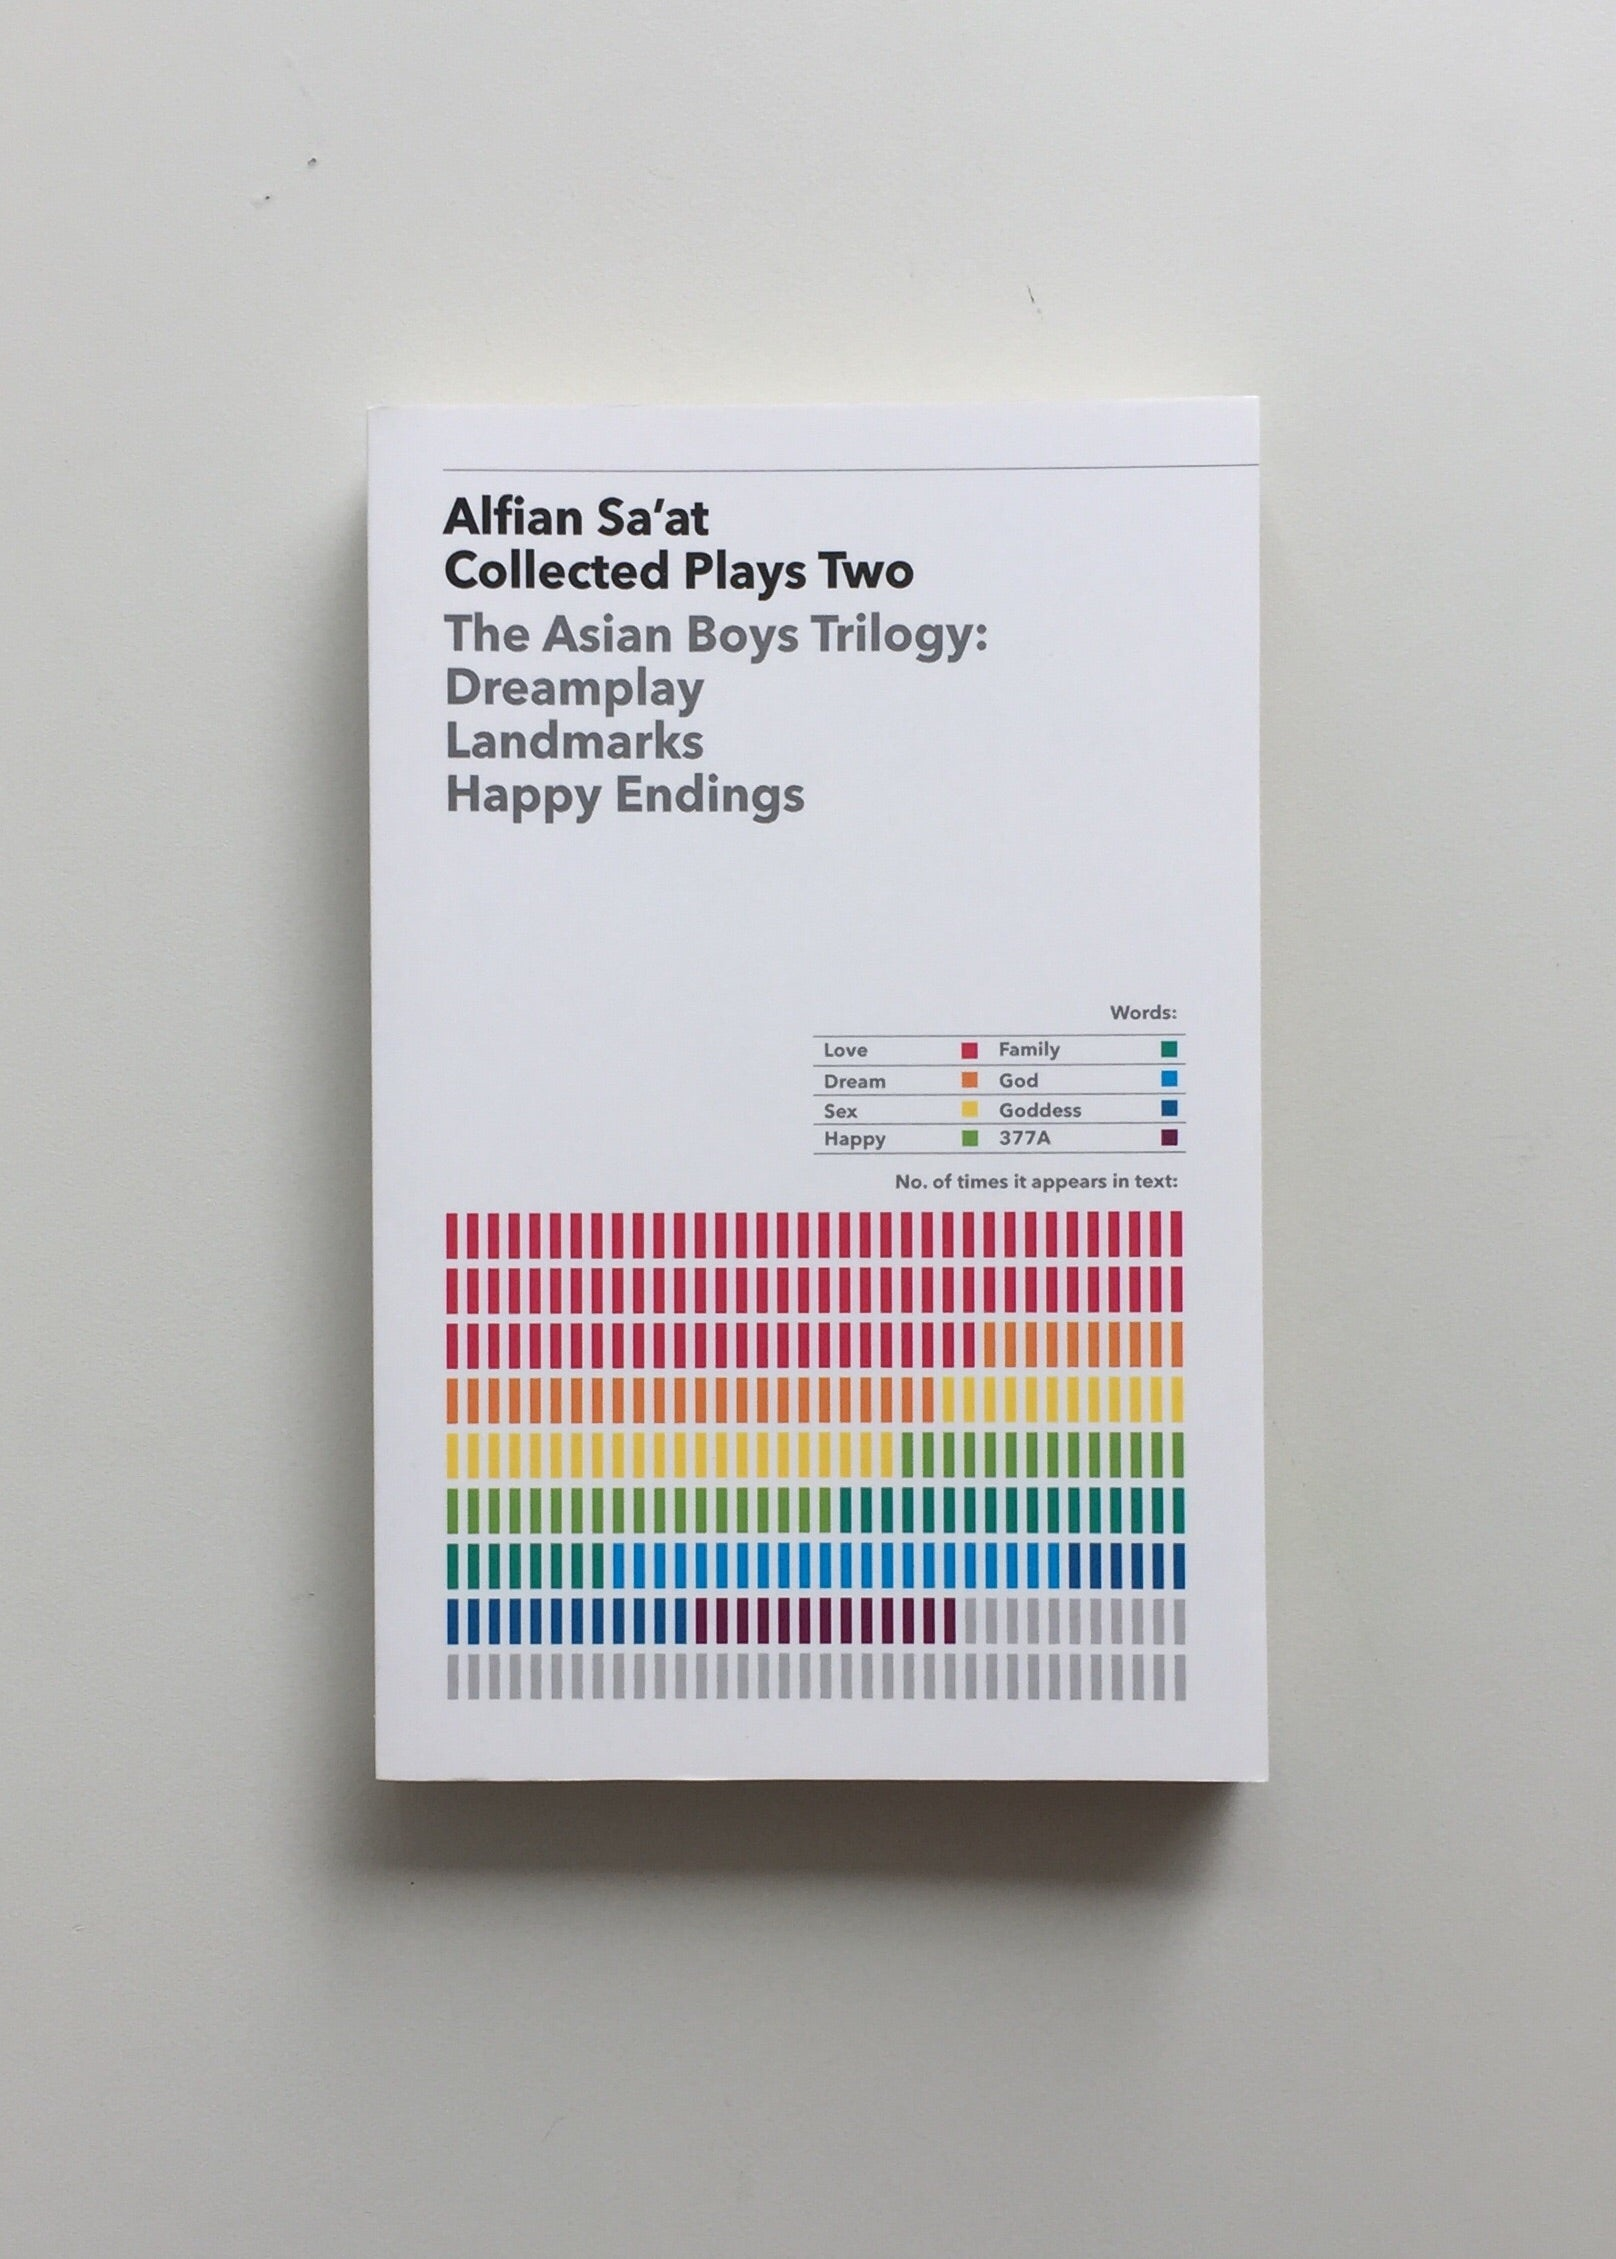 Collected Plays Two by Alfian Sa'at